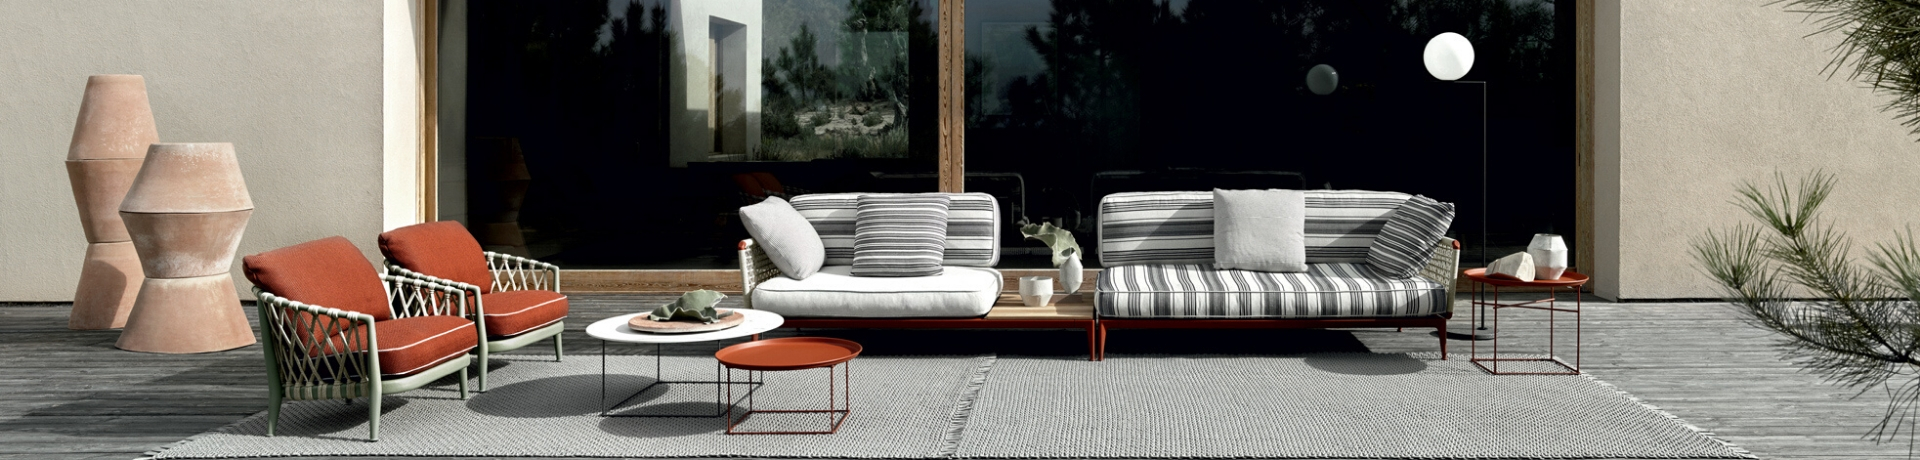 B&B Italia outdoor meubelen outdoor living outdoor meubilair outdoor design